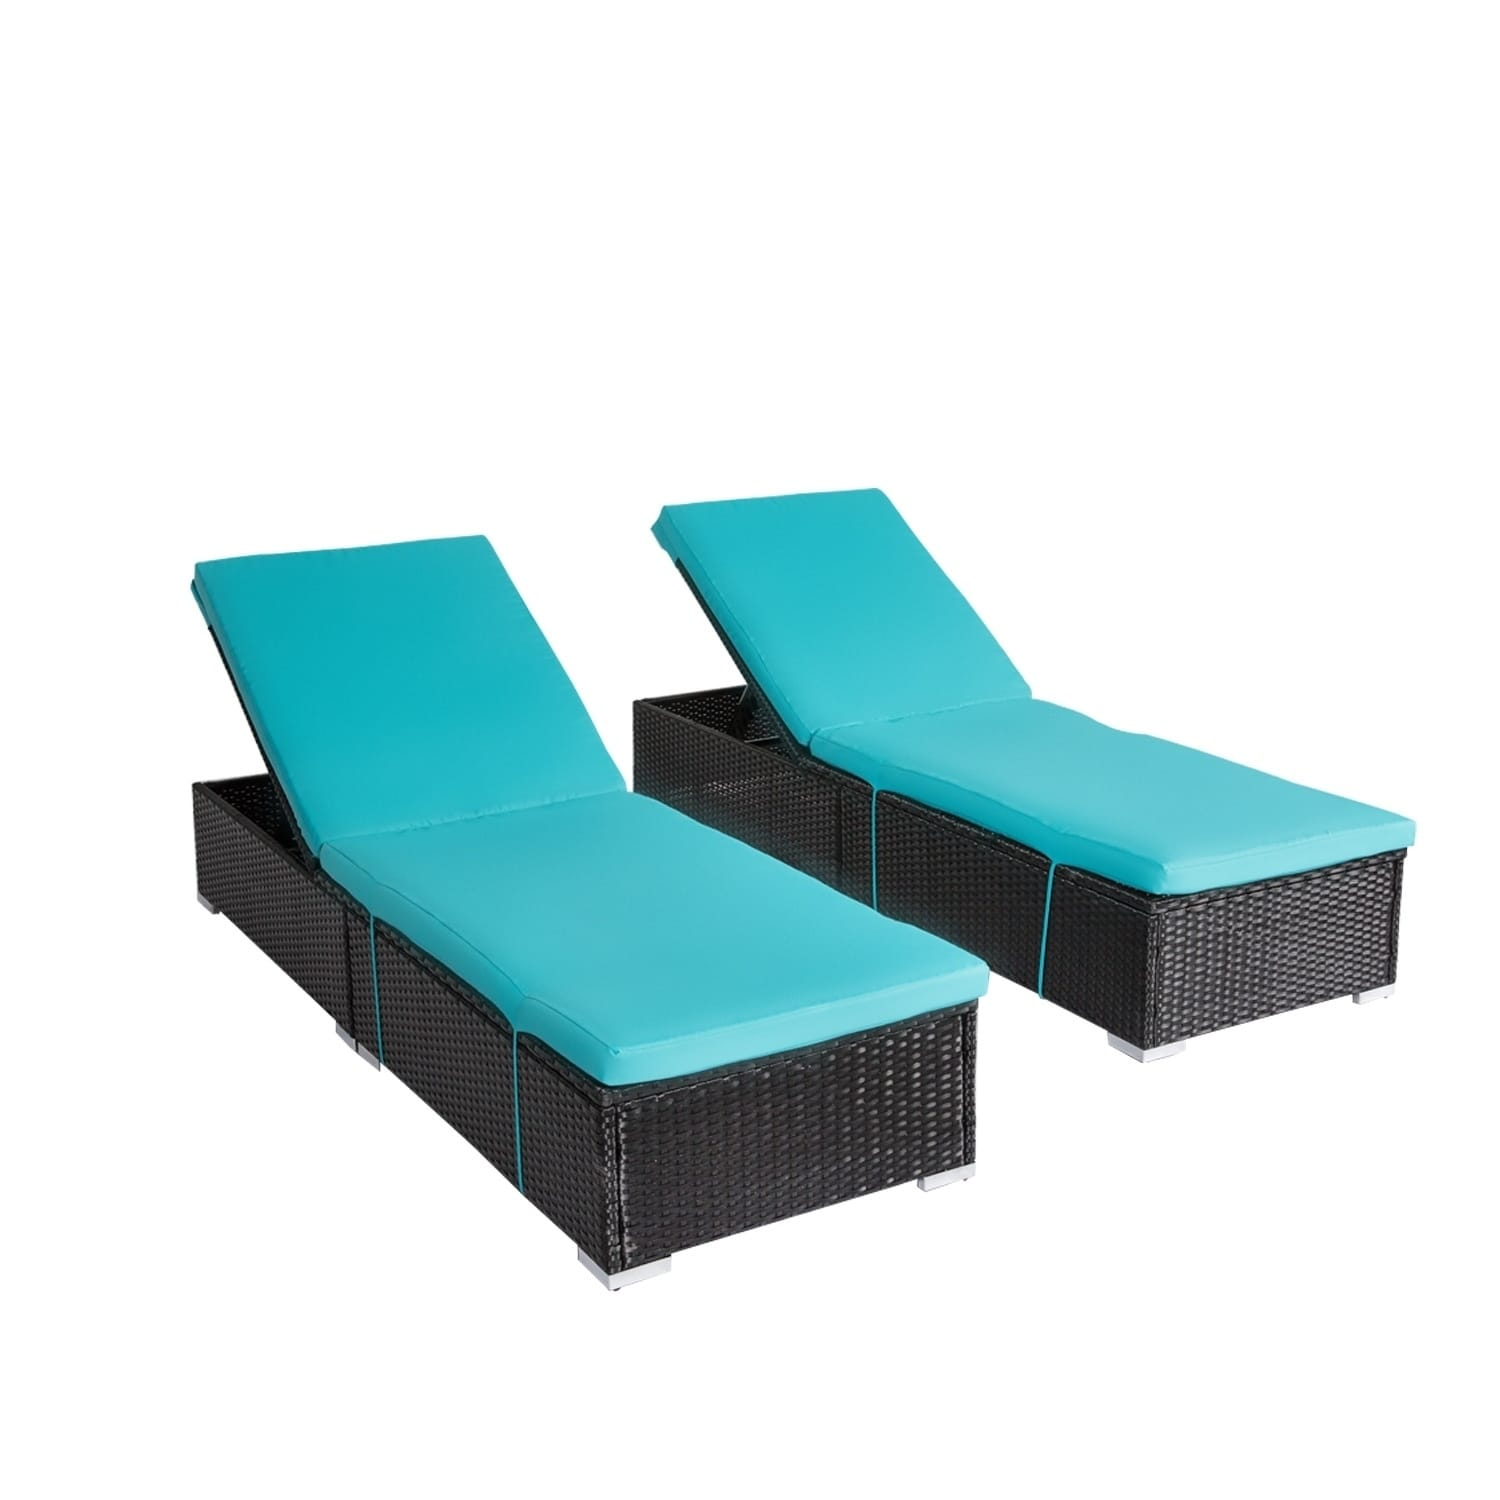 Kinbor Outdoor Adjule Chaise Lounge Chair Set All Weather Pe Rattan Wicker W Cushions Table